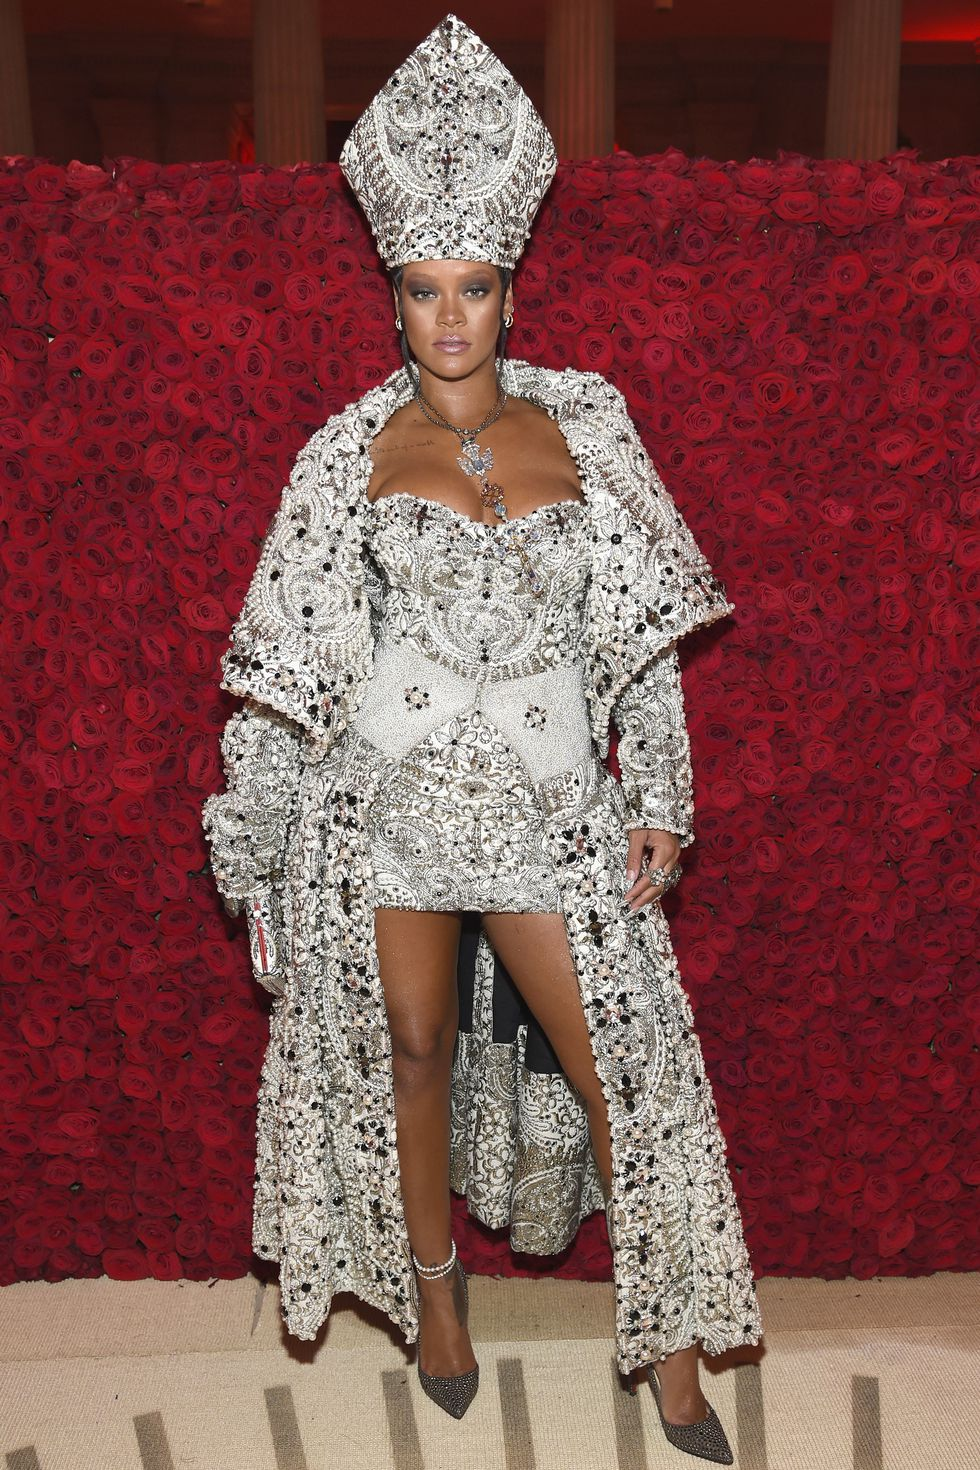 Rihanna in custom Maison Margiela by John Galliano, Christian Louboutin shoes, Maria Tash jewelry, Cartier jewelry, and a custom Judith Leiber Couture clutch.